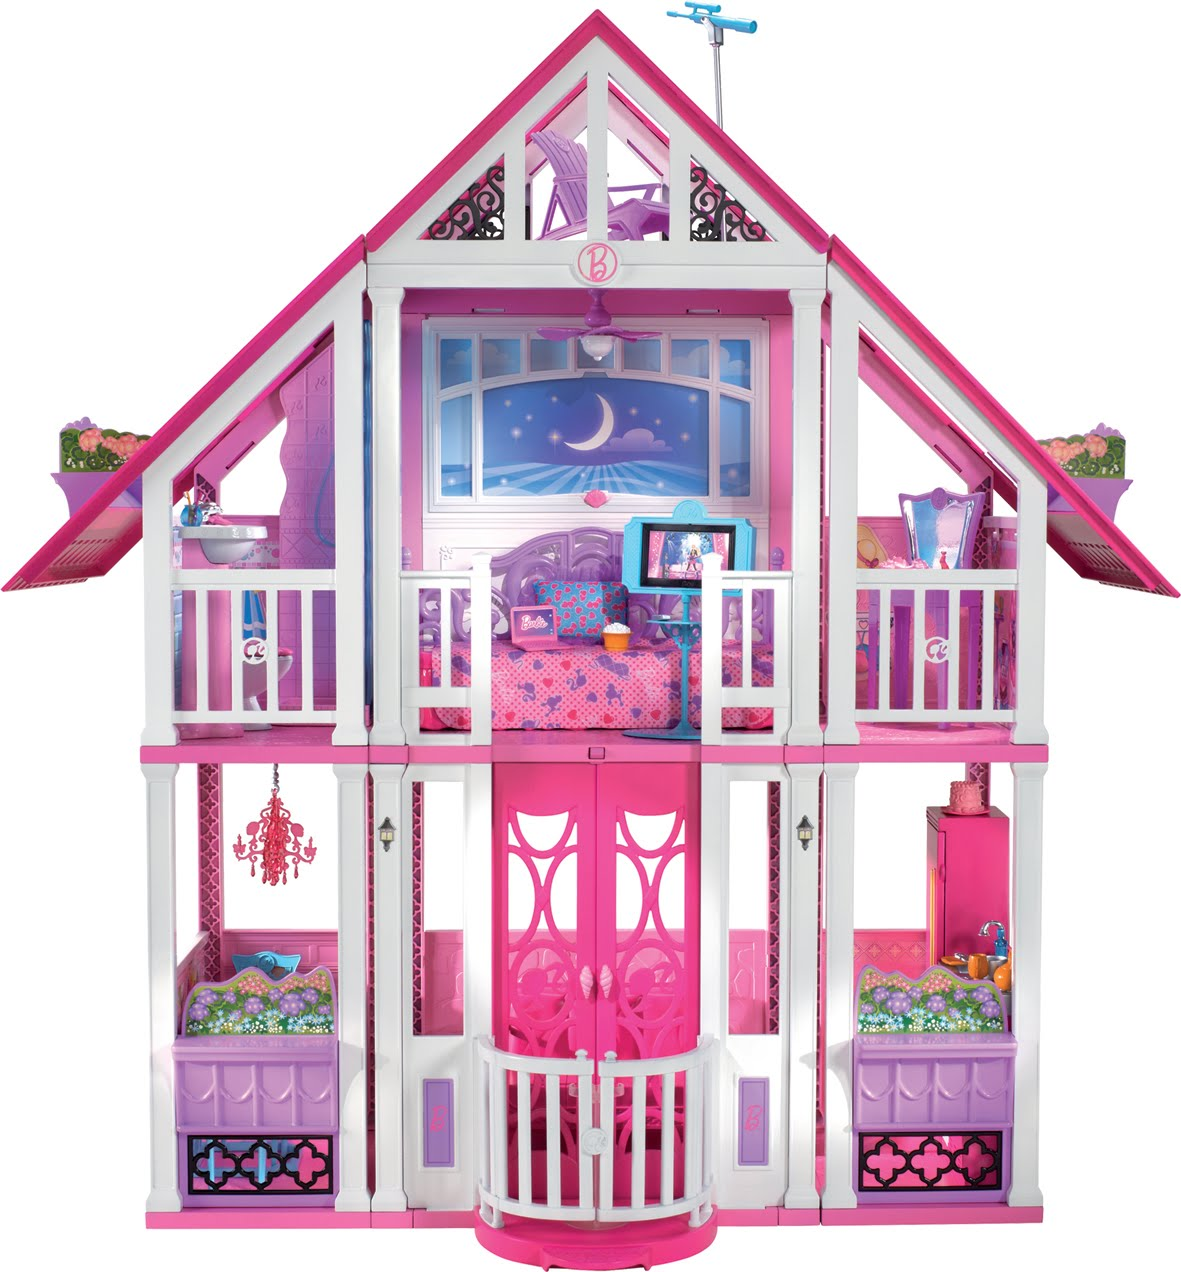 Dejuguetes: Supercasa de Barbie